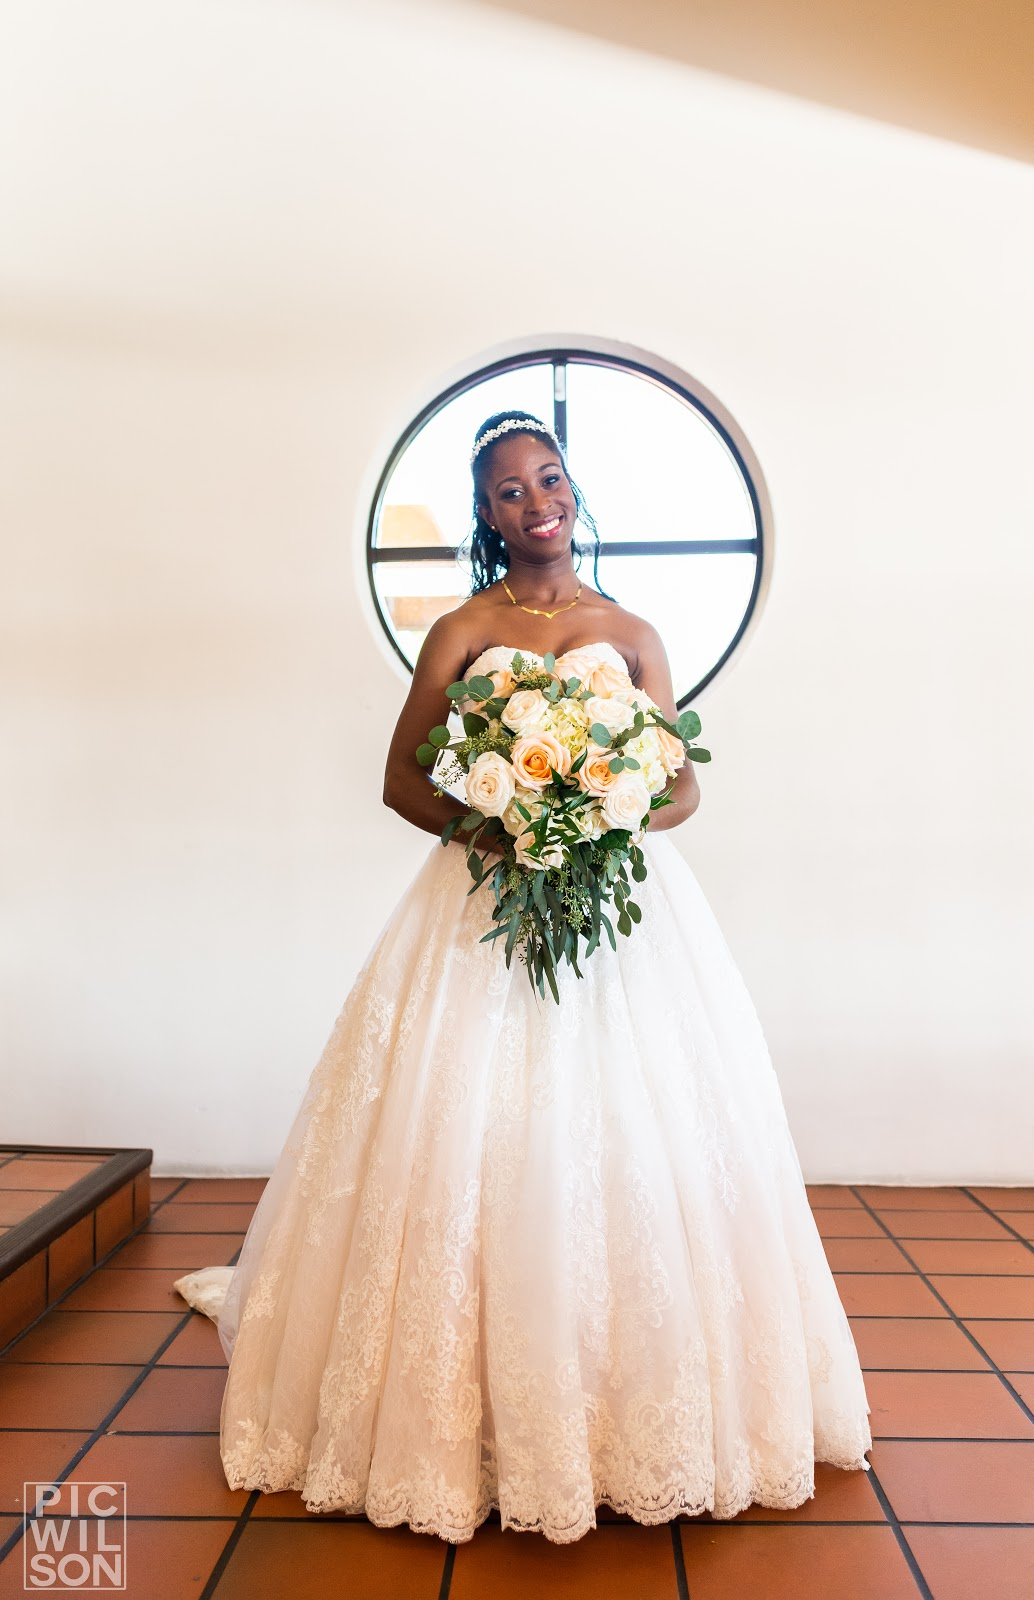 Wedding Day Picture Photo Credit: Gary Wilson at PicWilson Photography Dress: David's Bridal Patience & Pearls